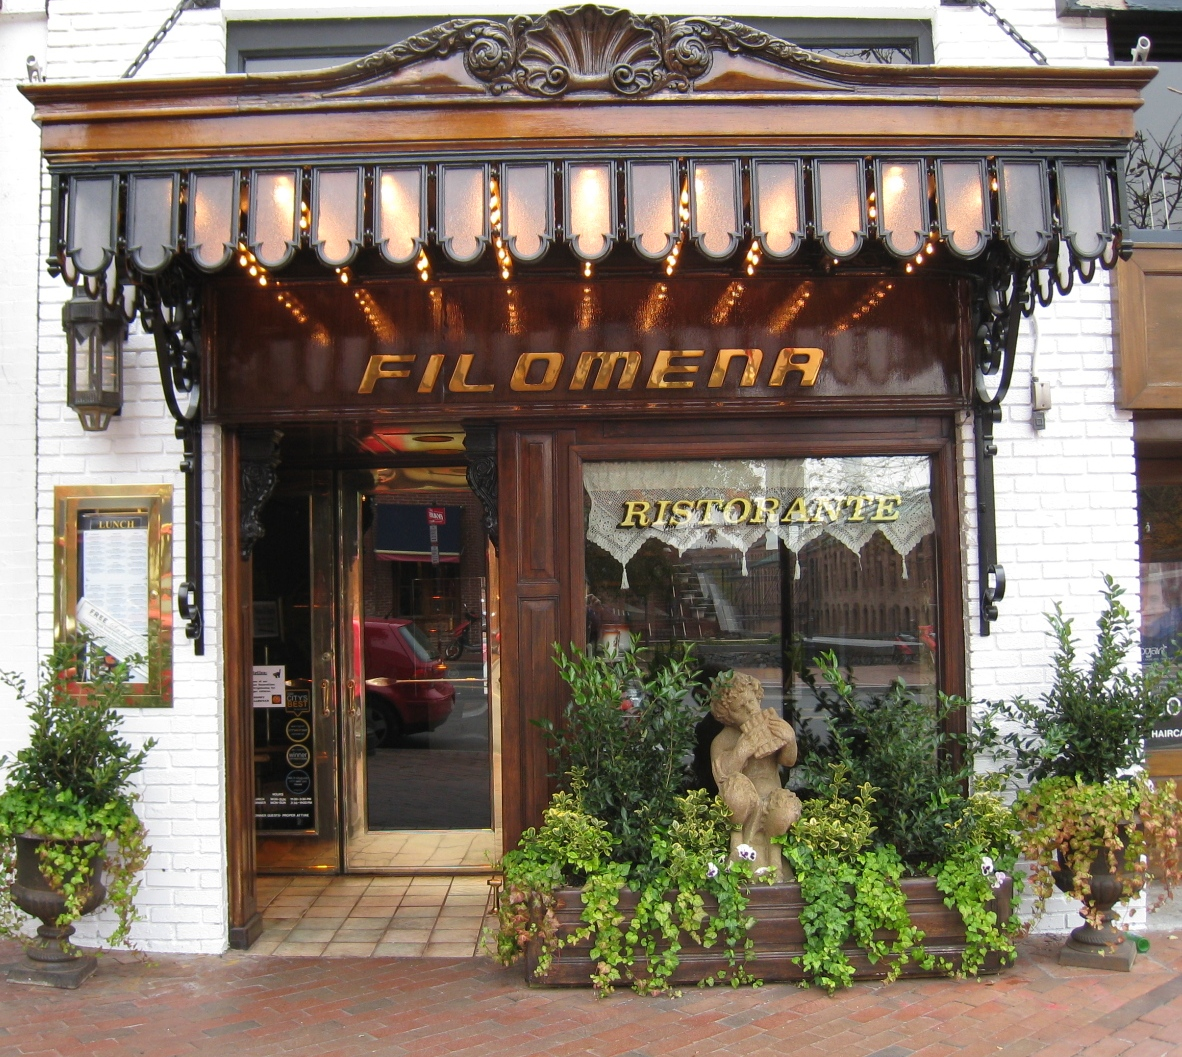 But the storefront of Filomena belies